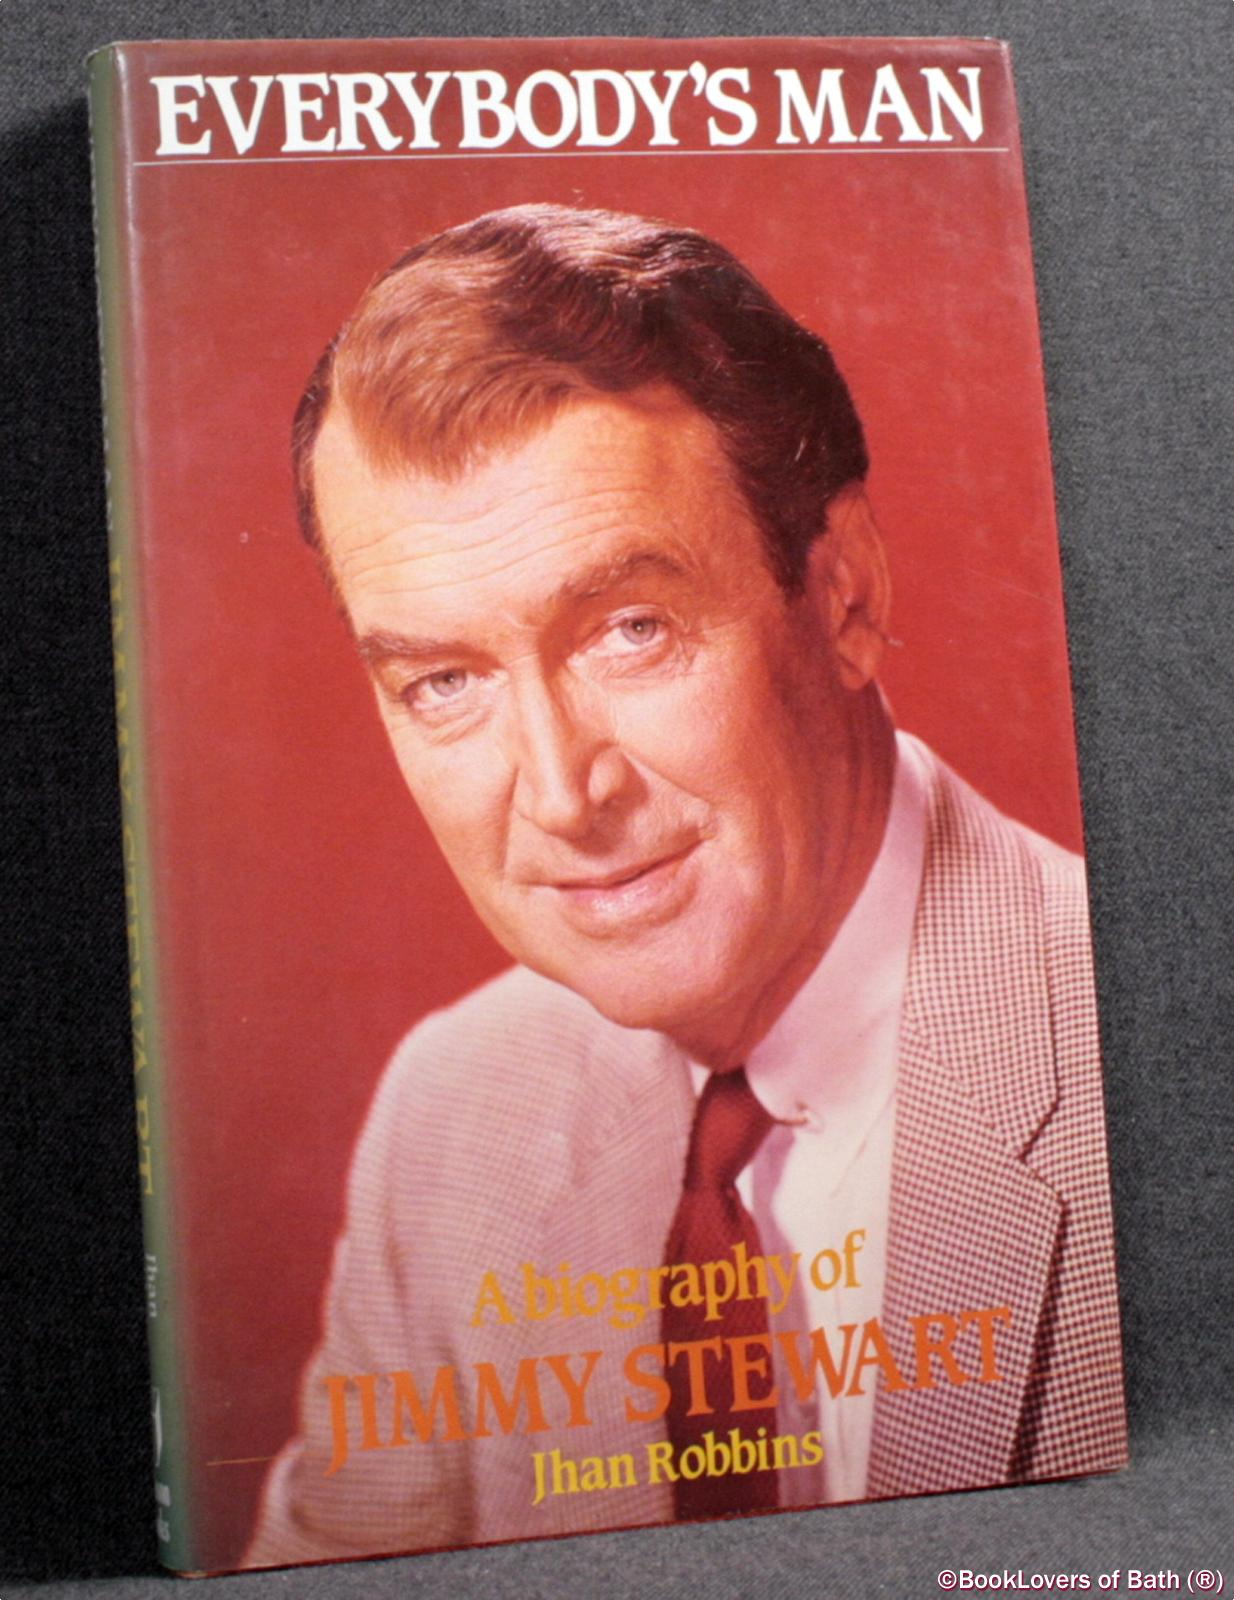 Everybody's Man: A Biography of Jimmy Stewart - Jhan Robbins